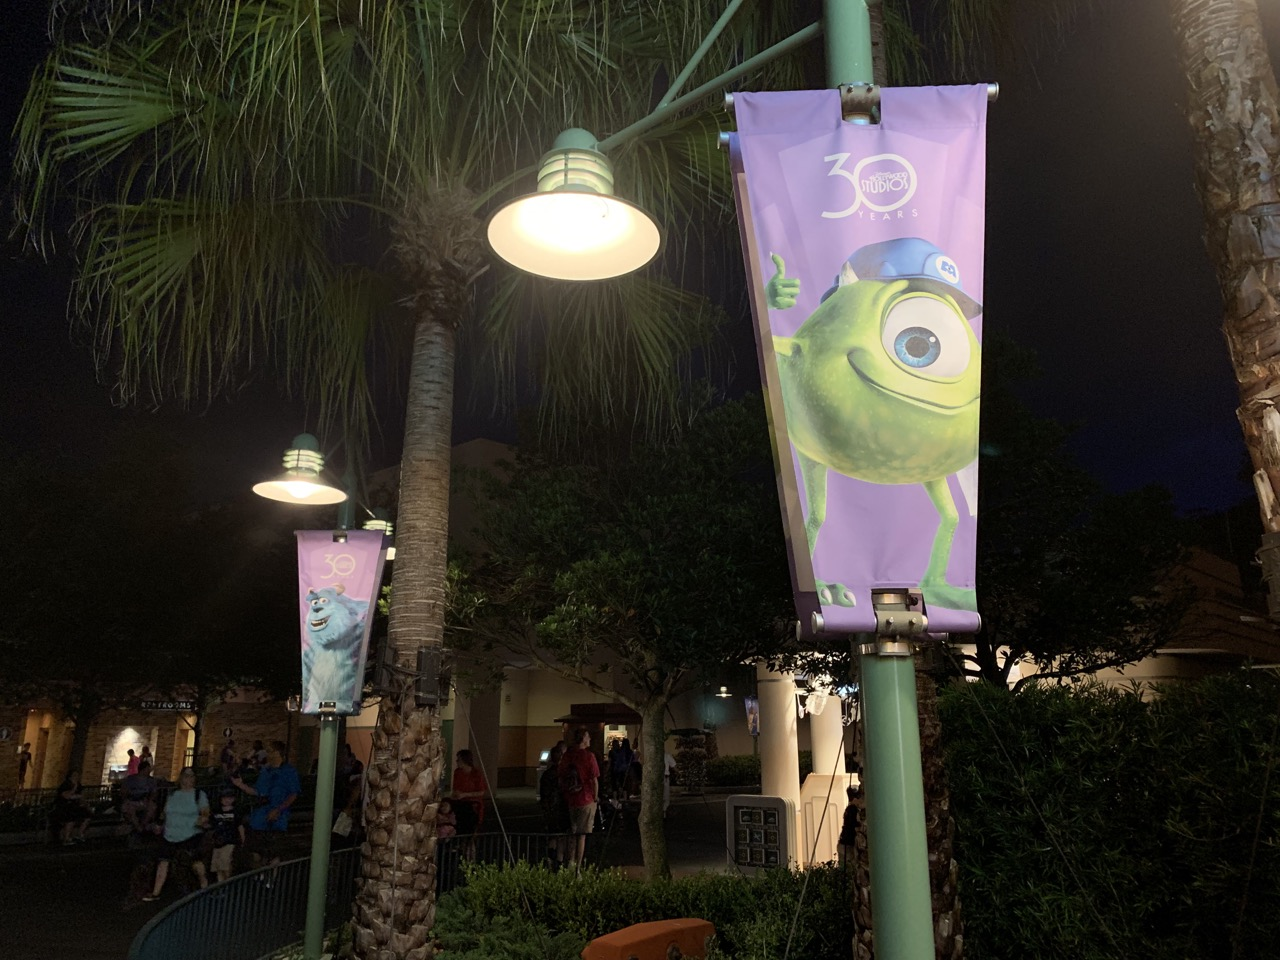 disney world trip report early summer 2019 day two 30th 02.jpeg